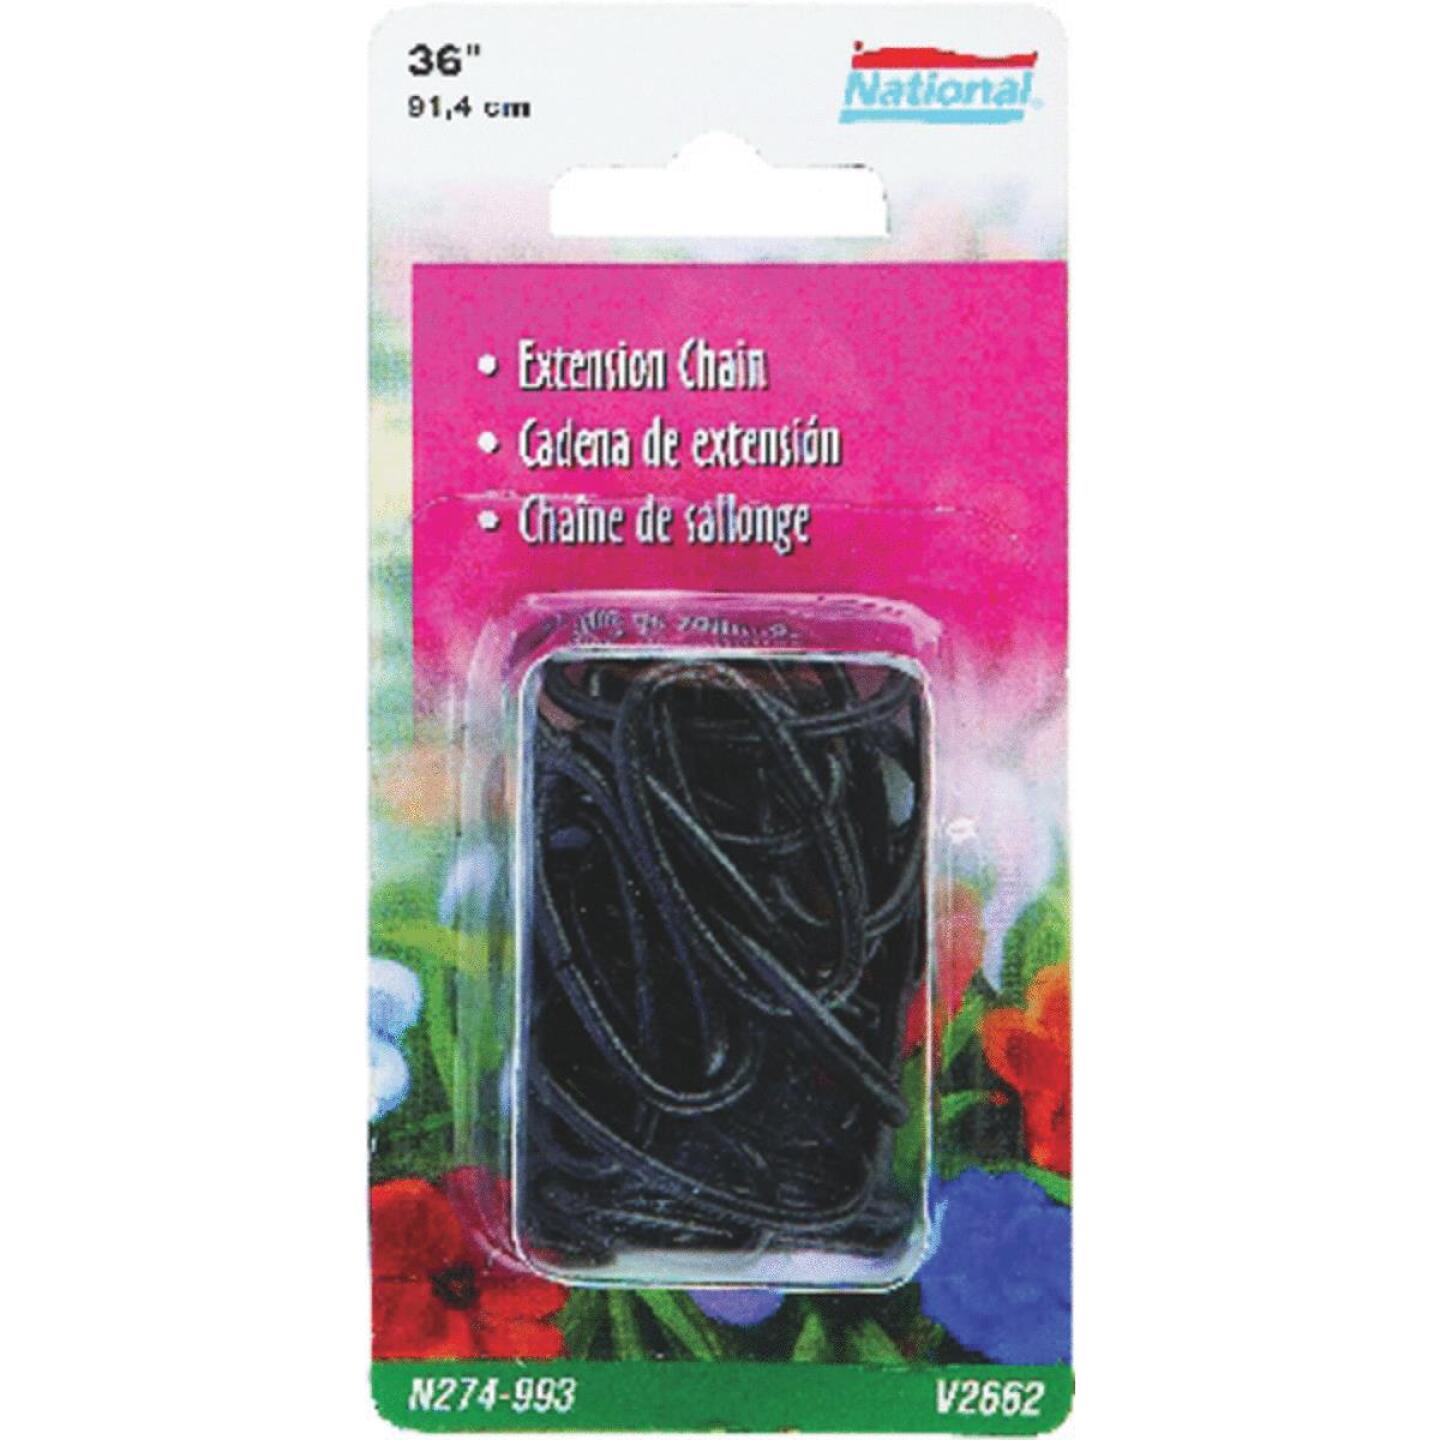 National 36 In. Black Metal Hanging Plant Extension Chain Image 1